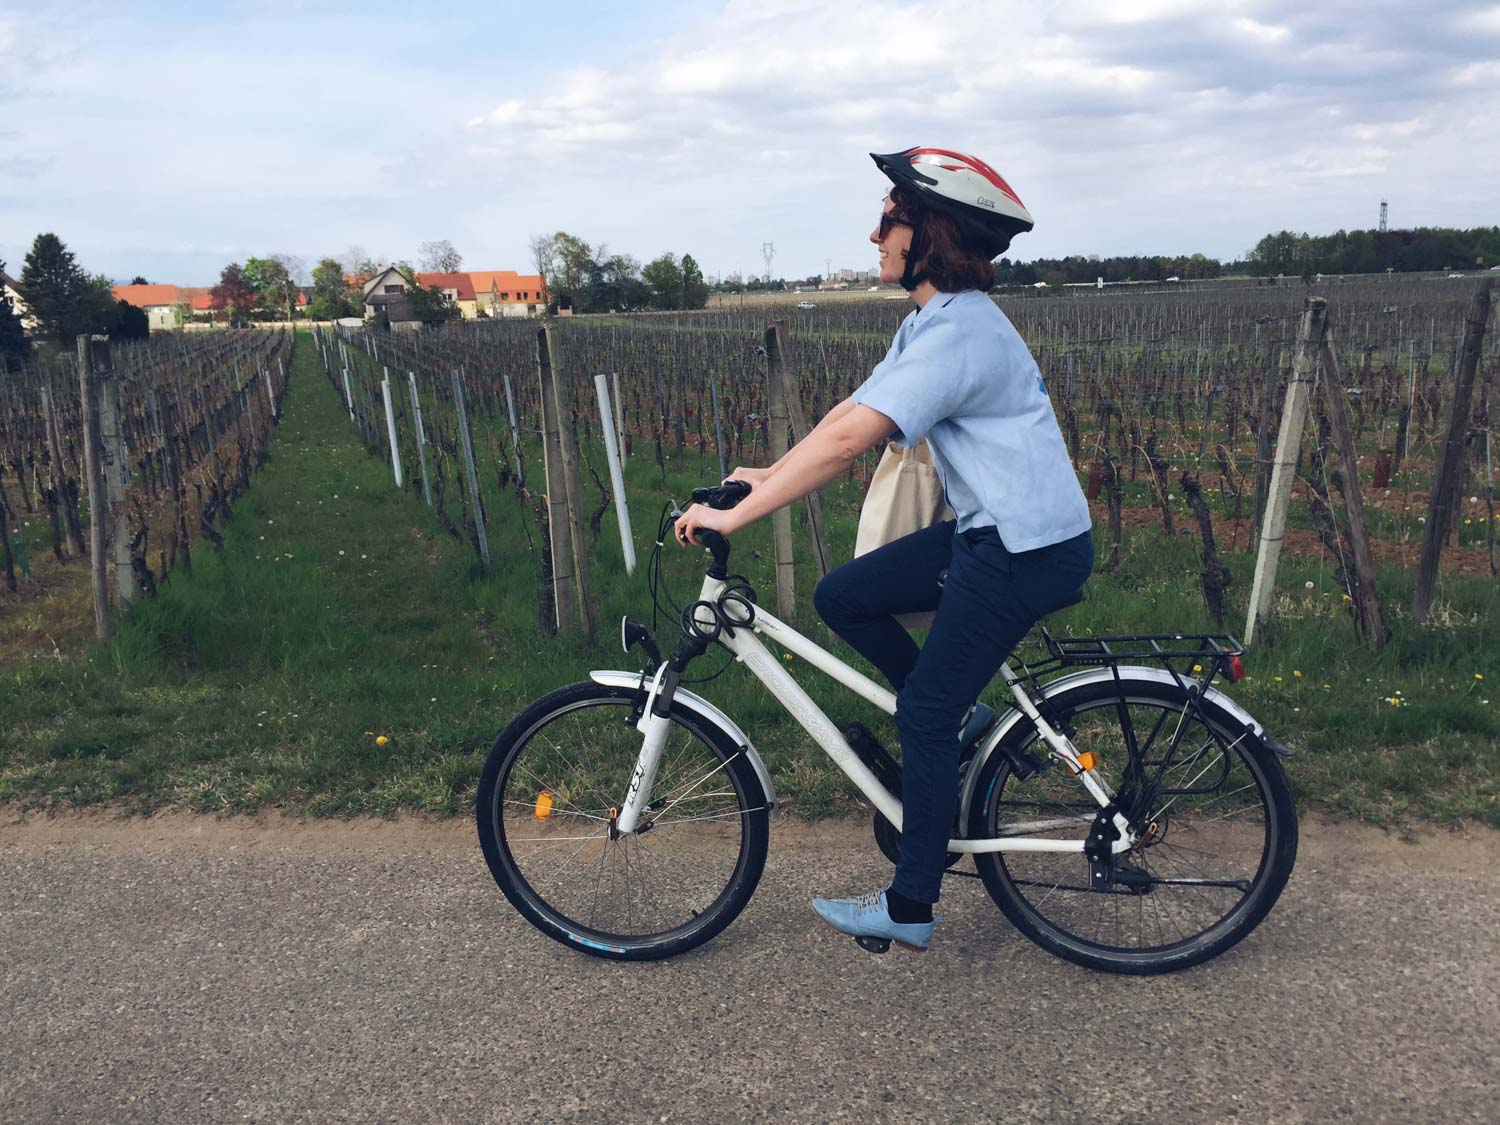 Cycling Colmar to Equisheim, France – Real-life fairytale village